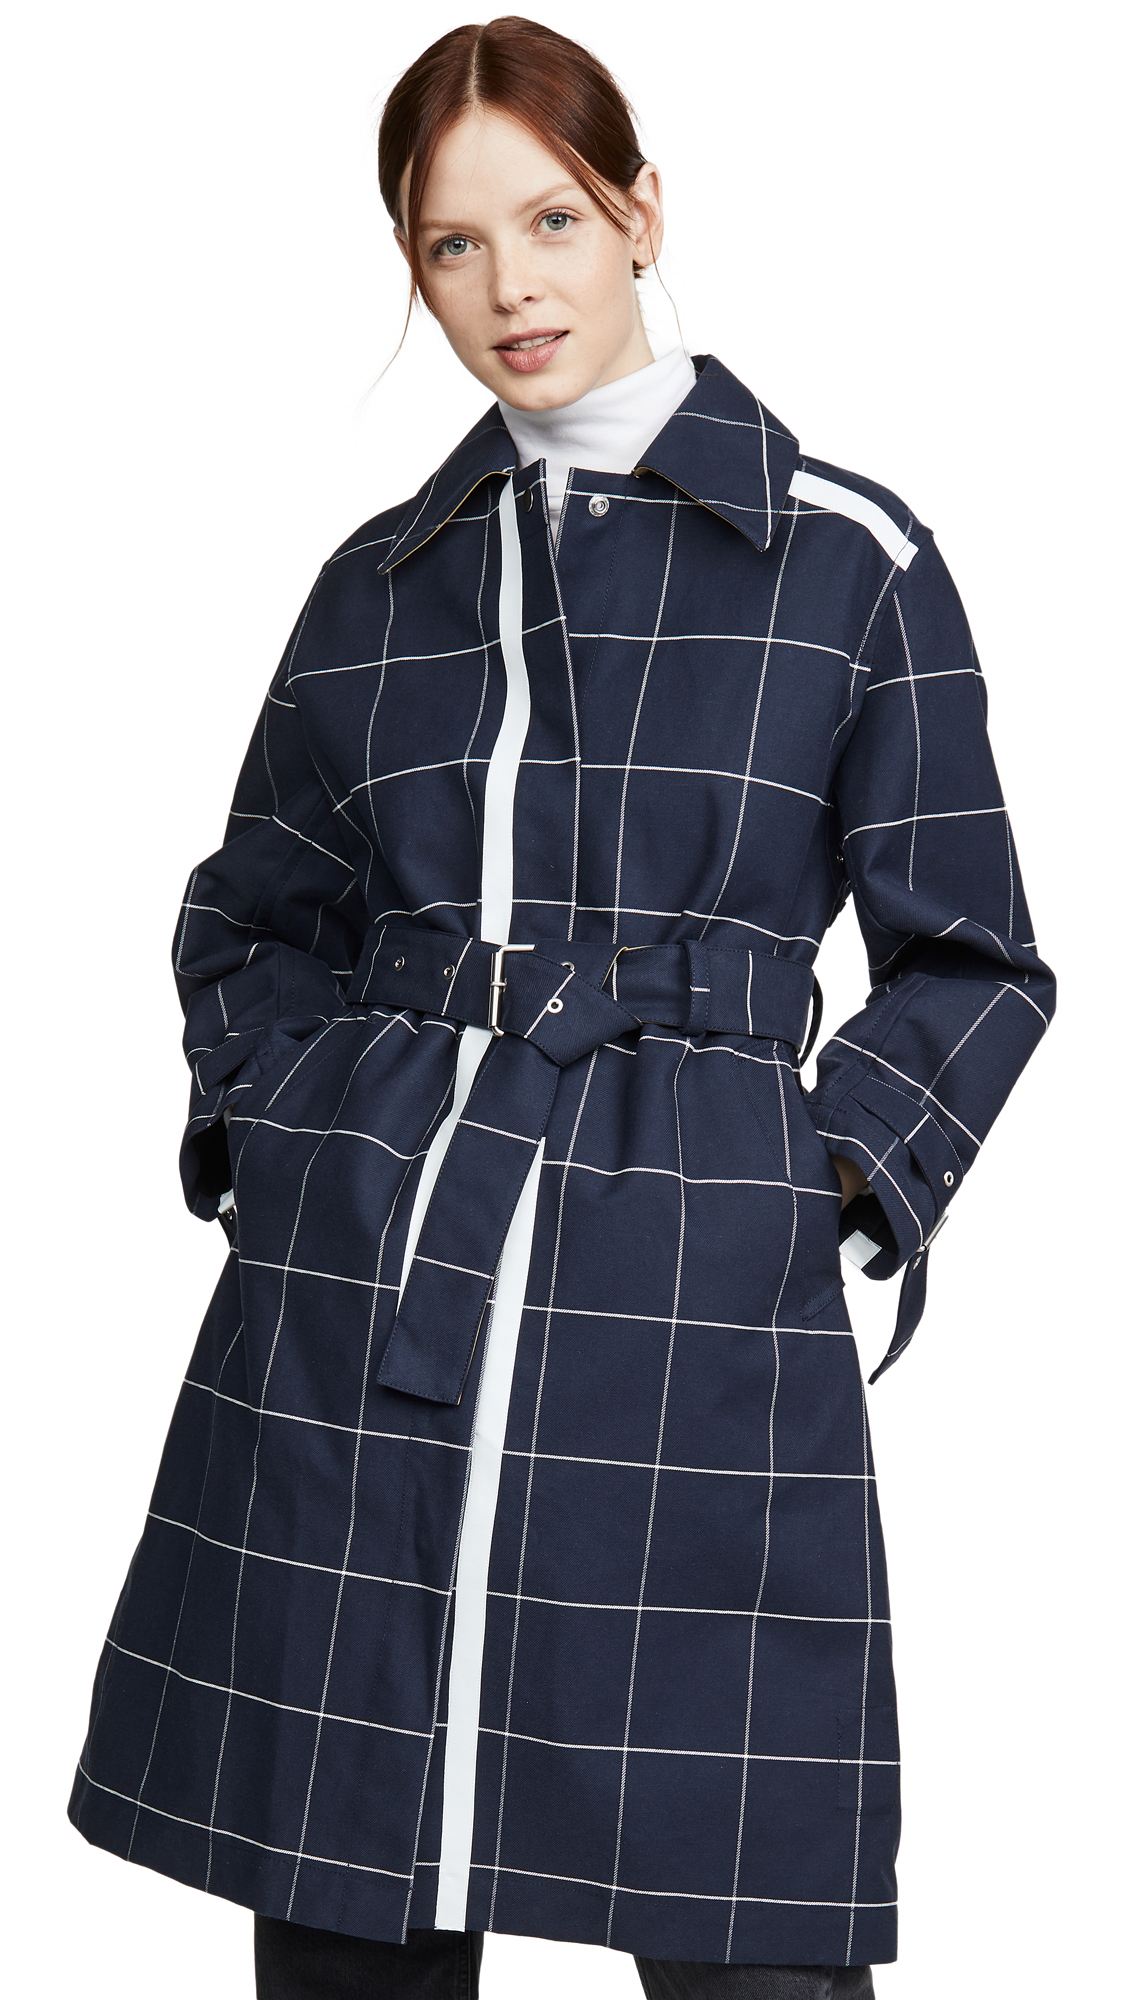 Buy 3.1 Phillip Lim Window Pane Trench with Side Slit online beautiful 3.1 Phillip Lim Jackets, Coats, Trench Coats